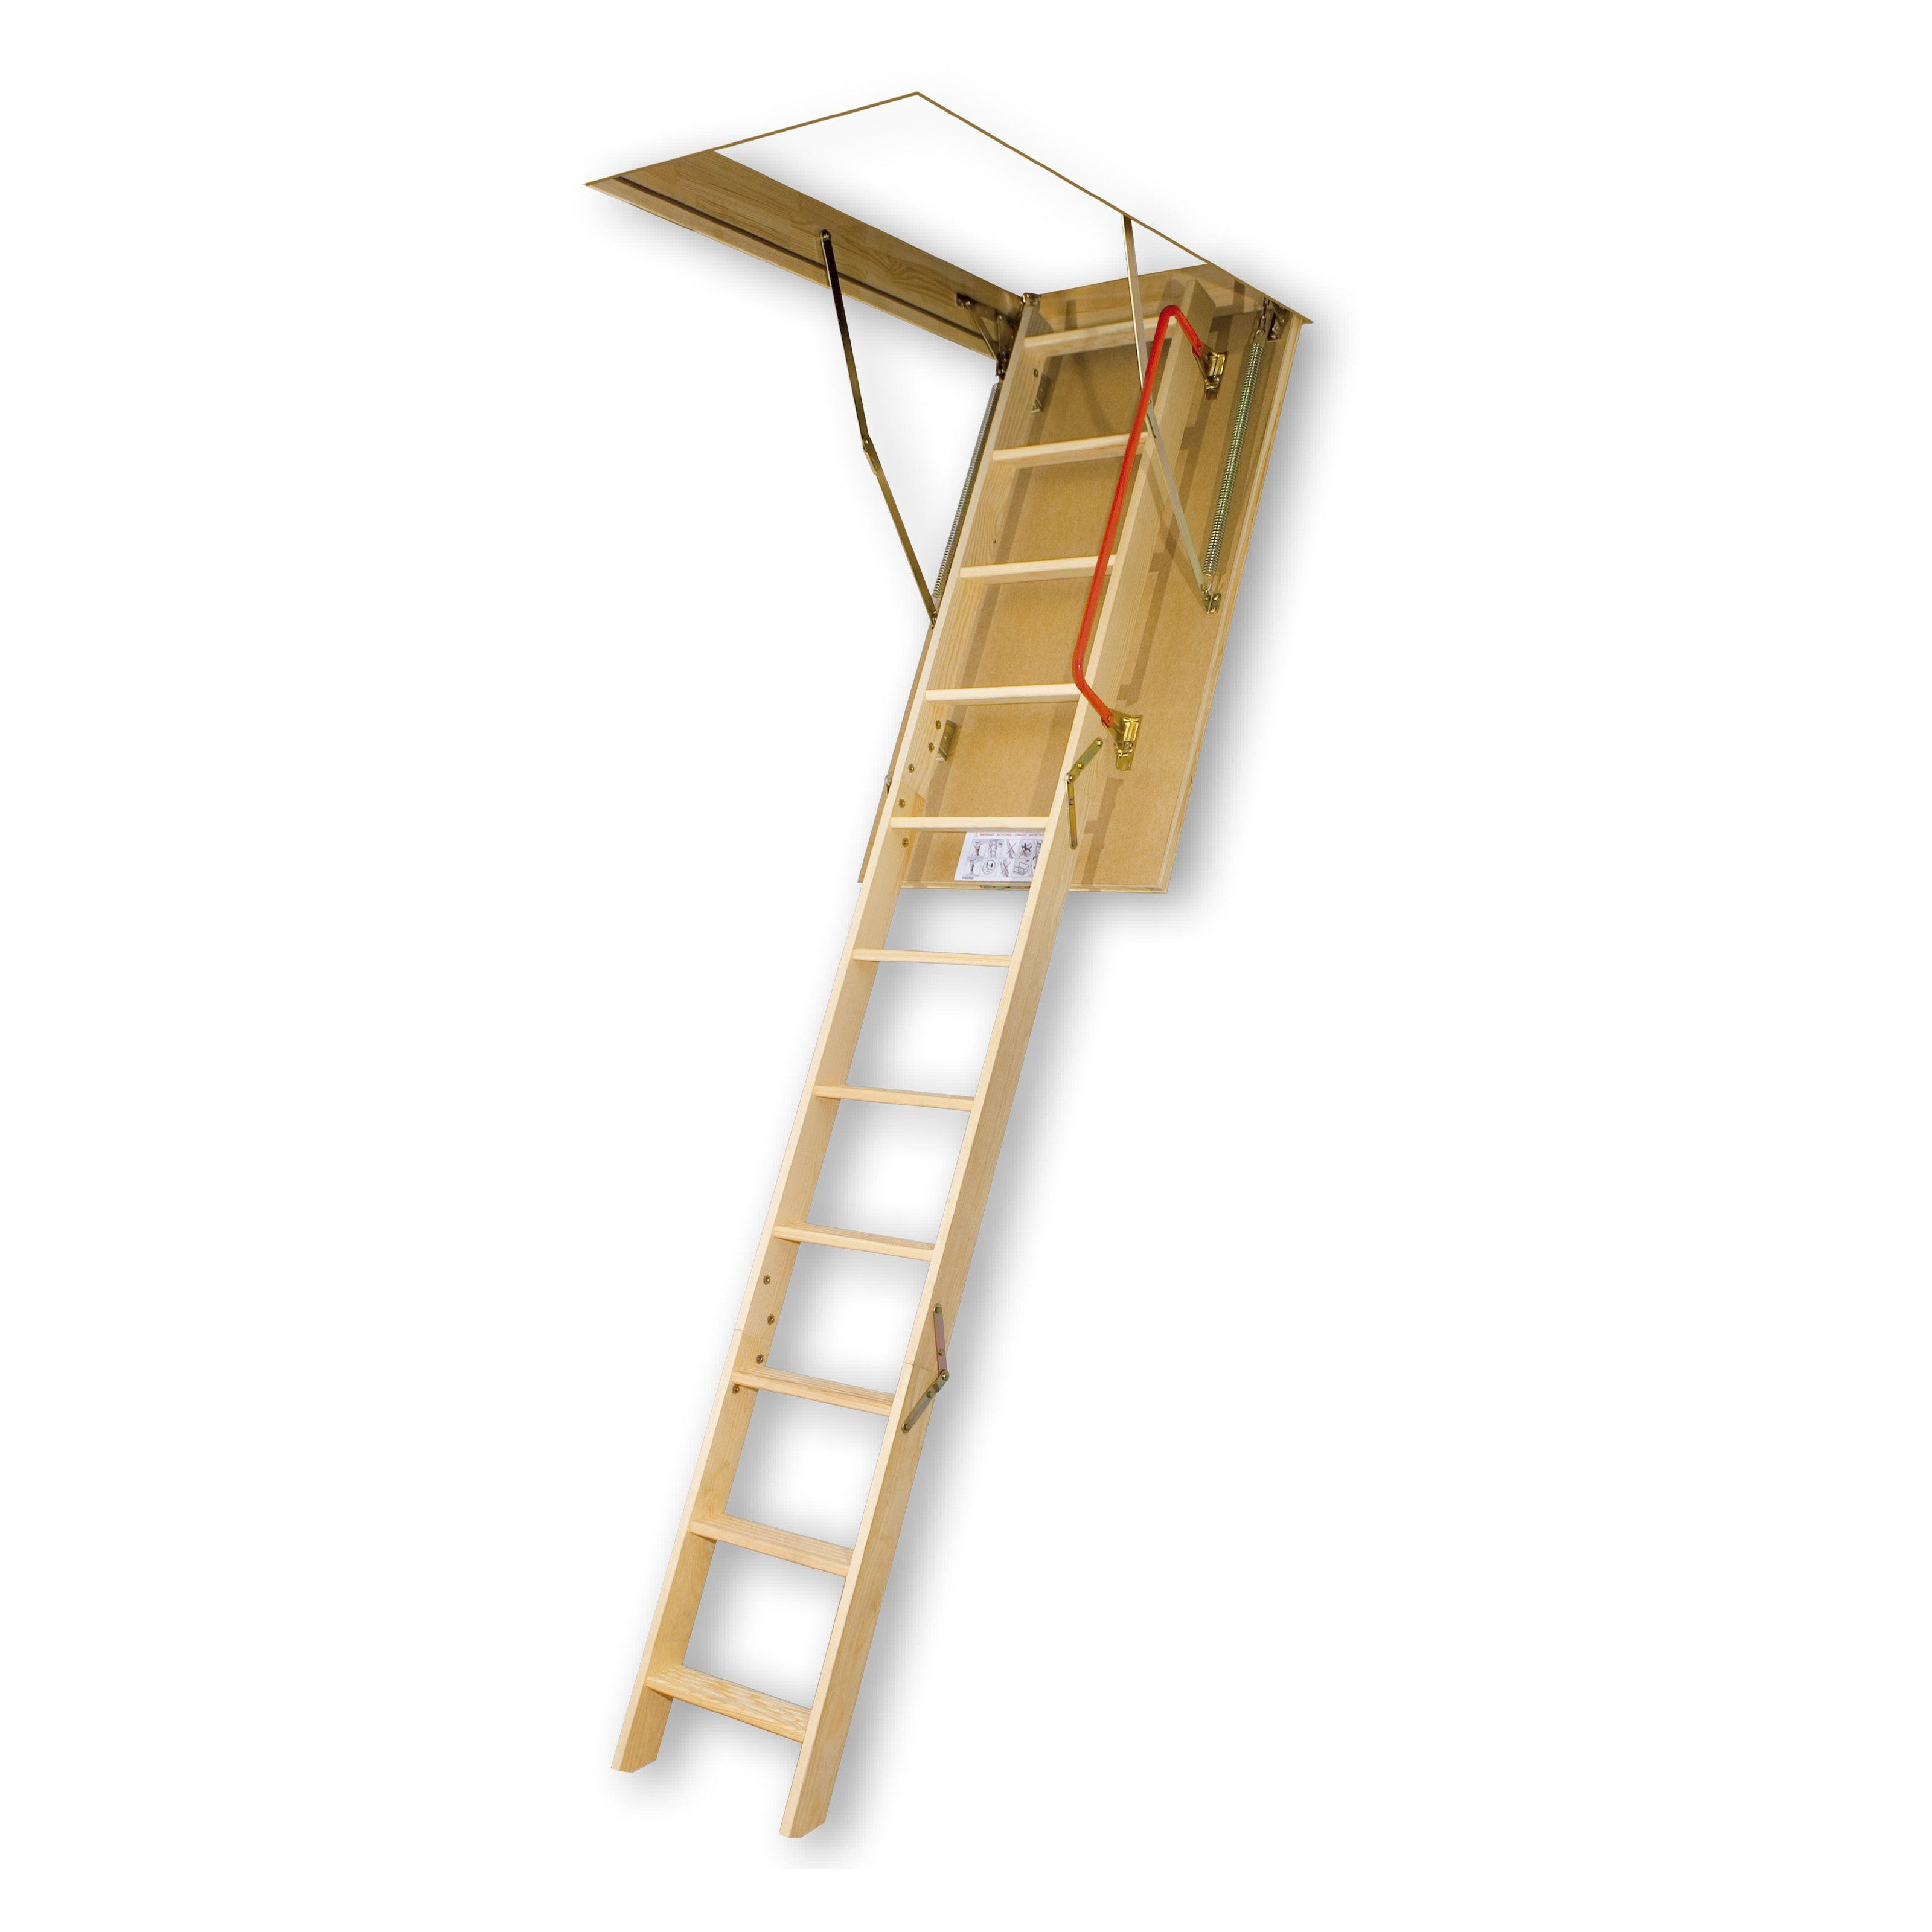 Fakro 10 9 Ft Insulated Wooden Attic Ladder 66853 Attic Ladder Attic Staircase Attic Stairs